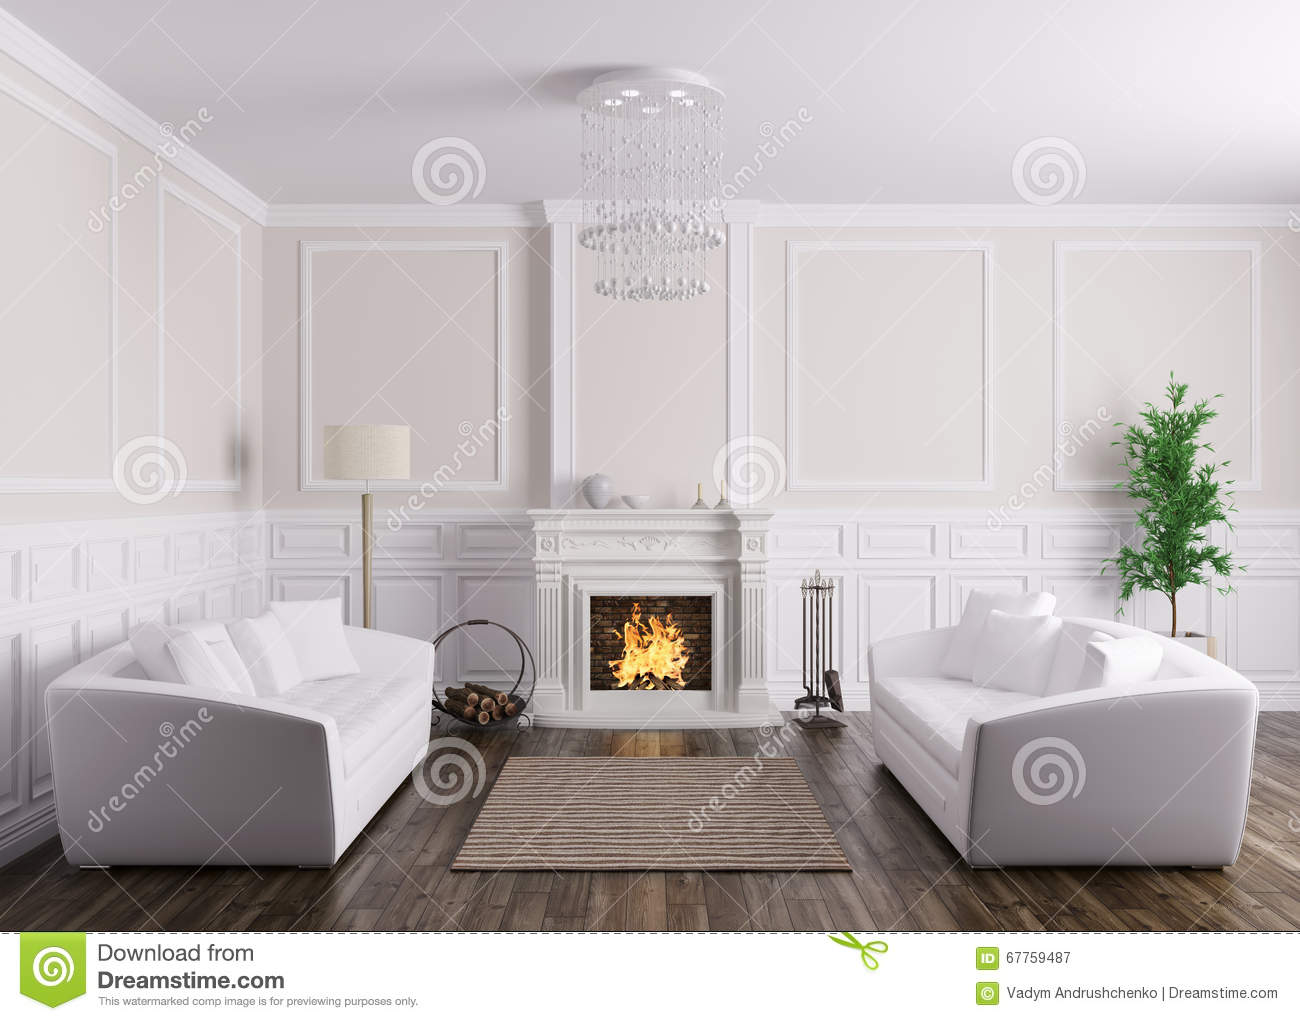 American Classic Living Room Design Classic Interior Of Living Room With Sofas And Fireplace